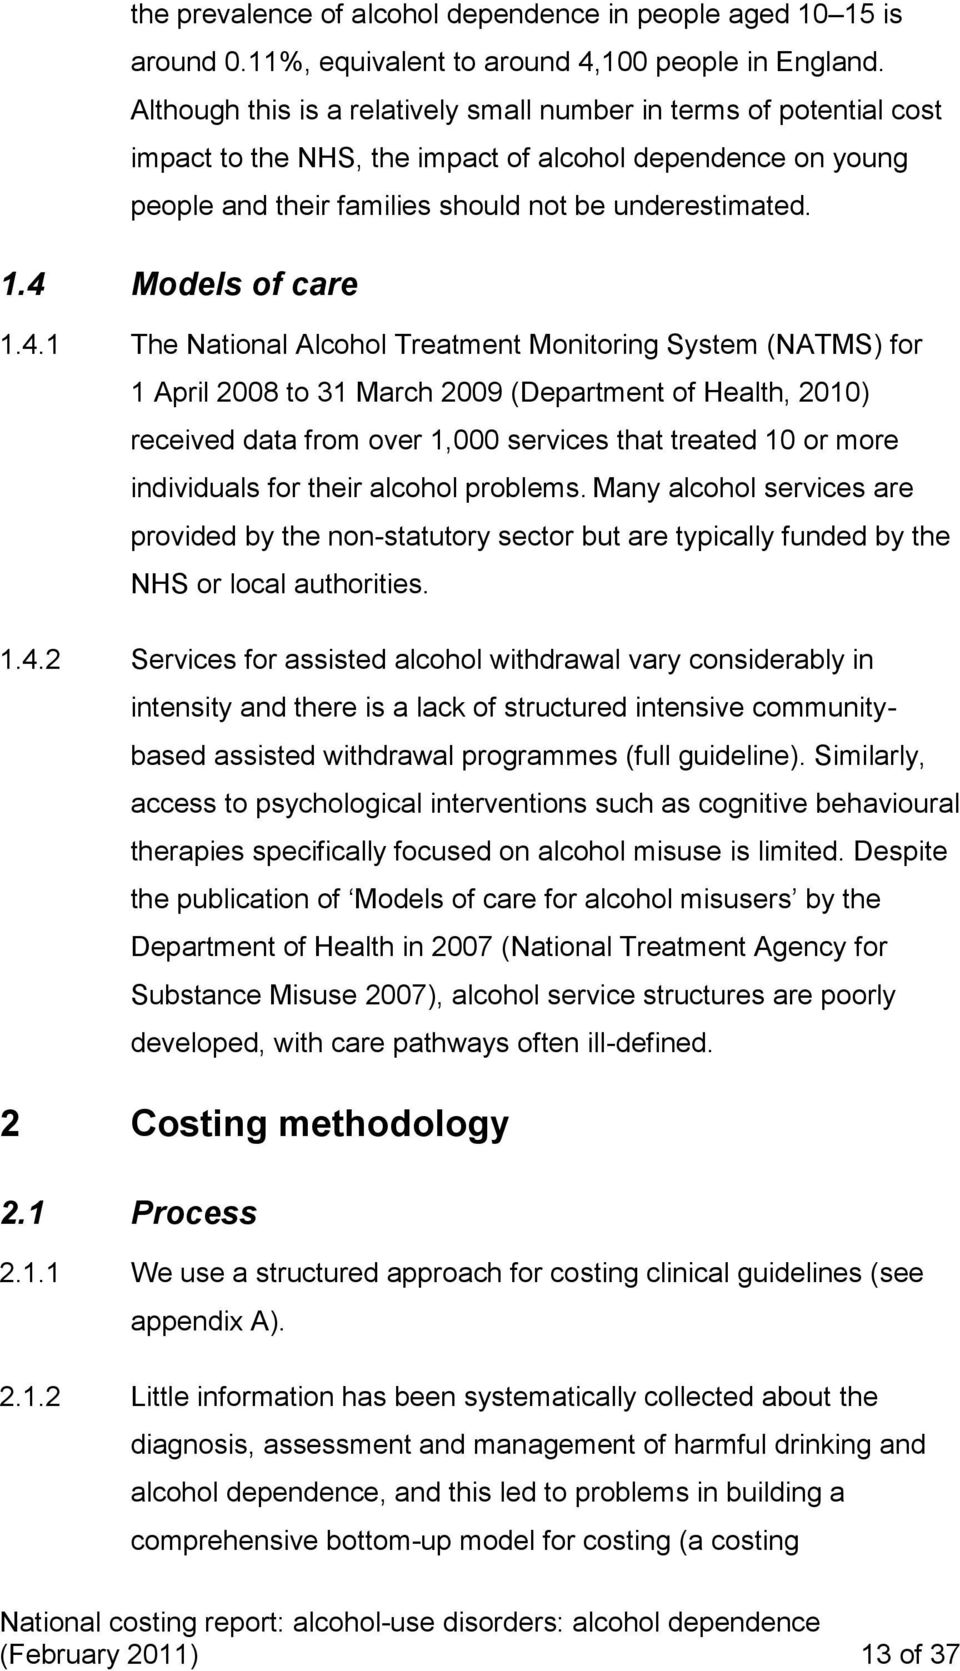 4 Models of care 1.4.1 The National Alcohol Treatment Monitoring System (NATMS) for 1 April 2008 to 31 March 2009 (Department of Health, 2010) received data from over 1,000 services that treated 10